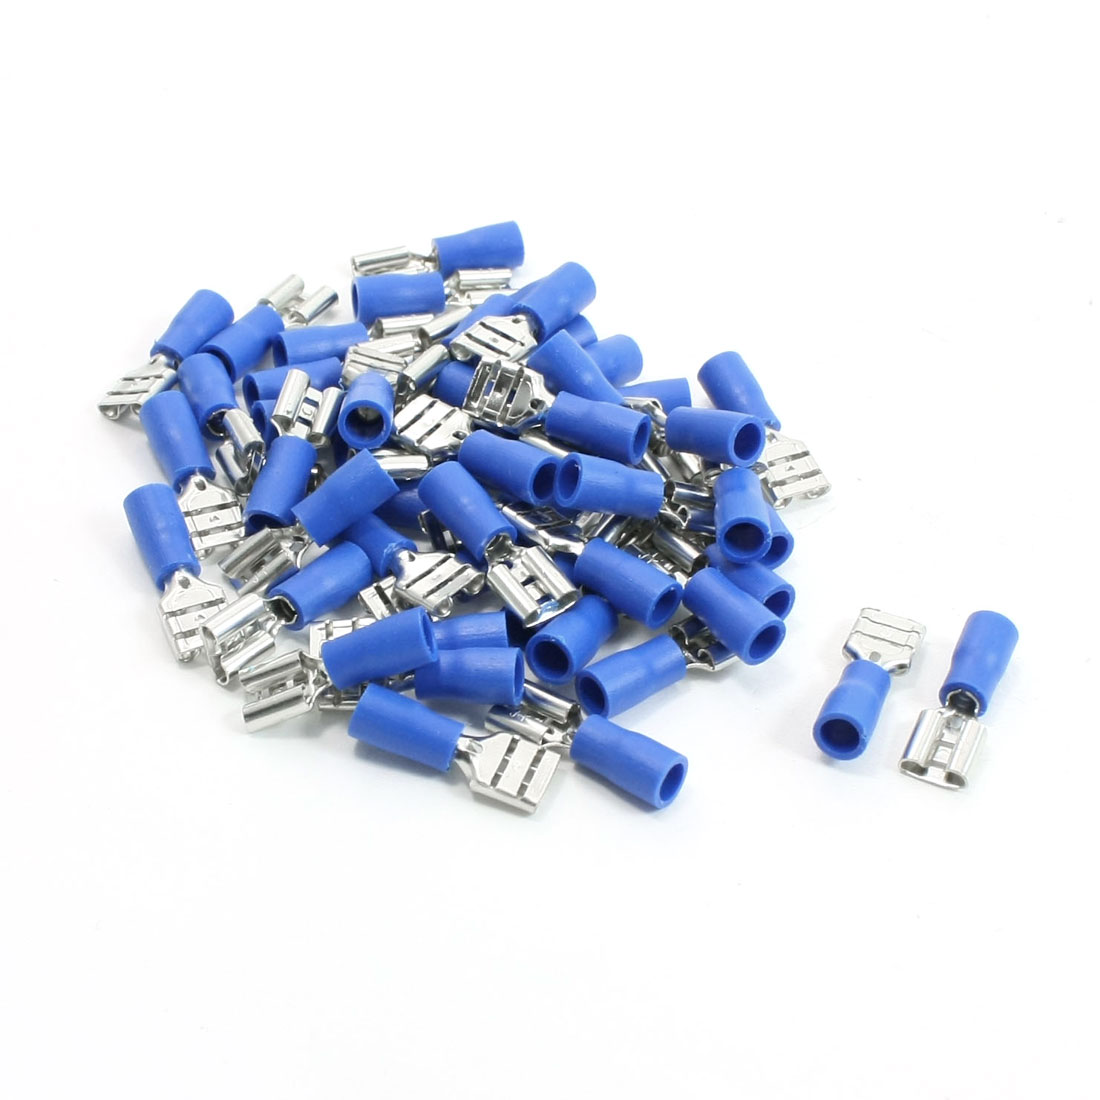 50 Pcs 2.5mm Dia Wire Hole Spade Crimp Terminals Connectors 220VAC 15A